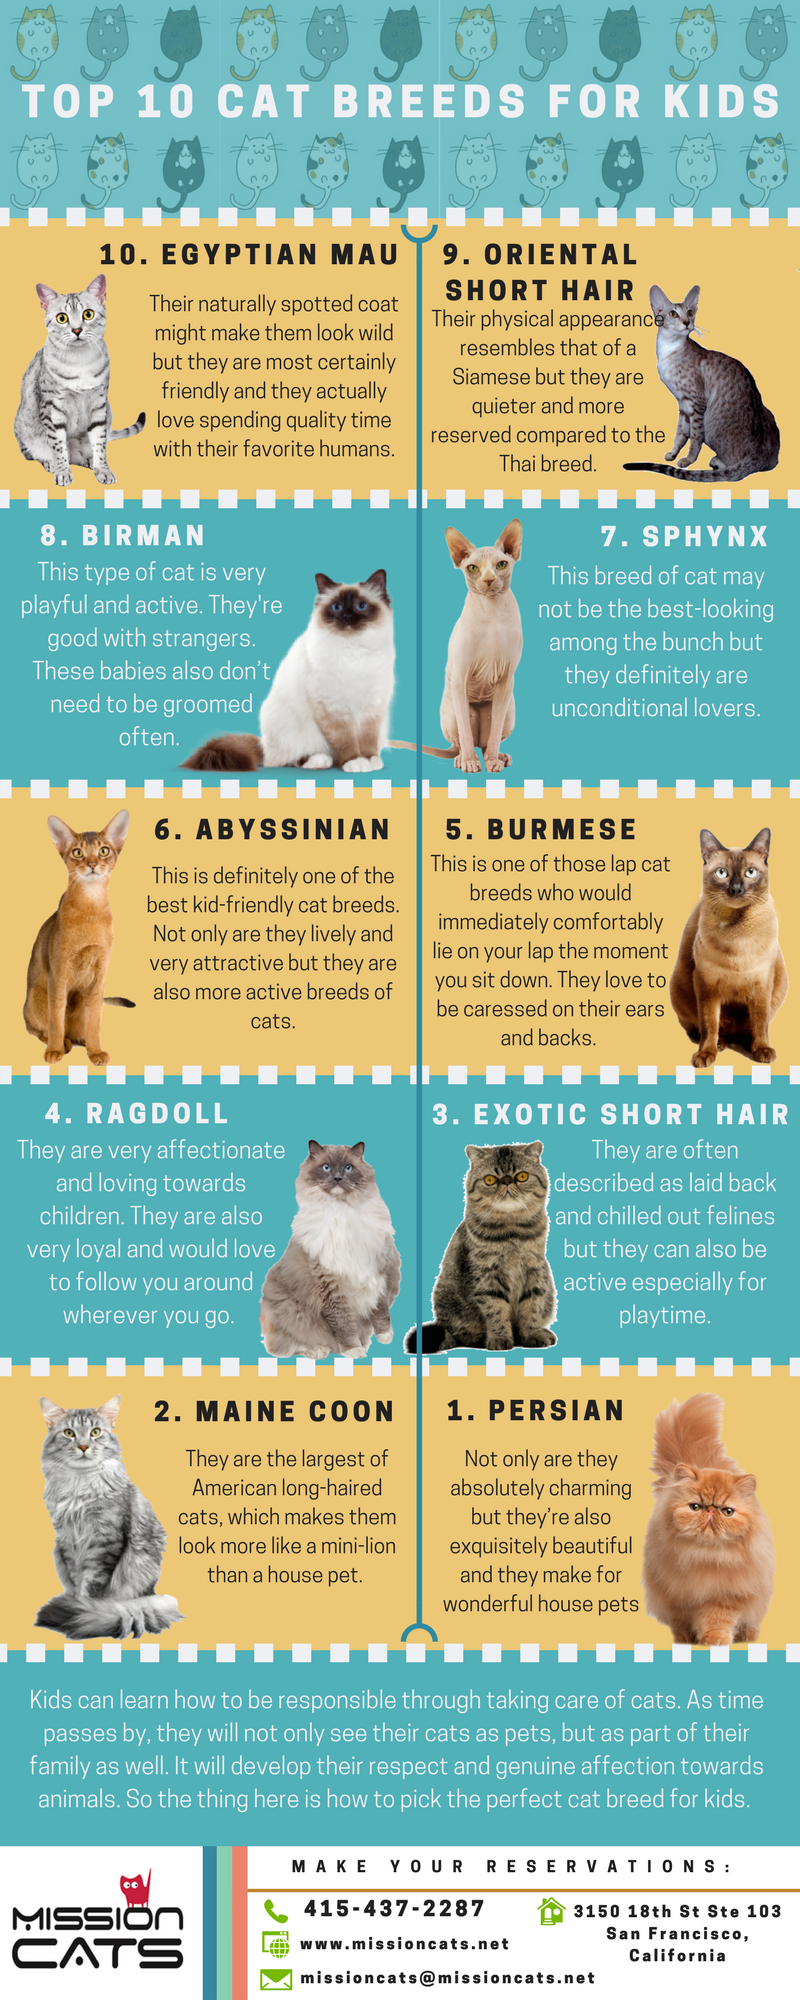 Top 10 Cat Breeds for Kids | Mission: Cats